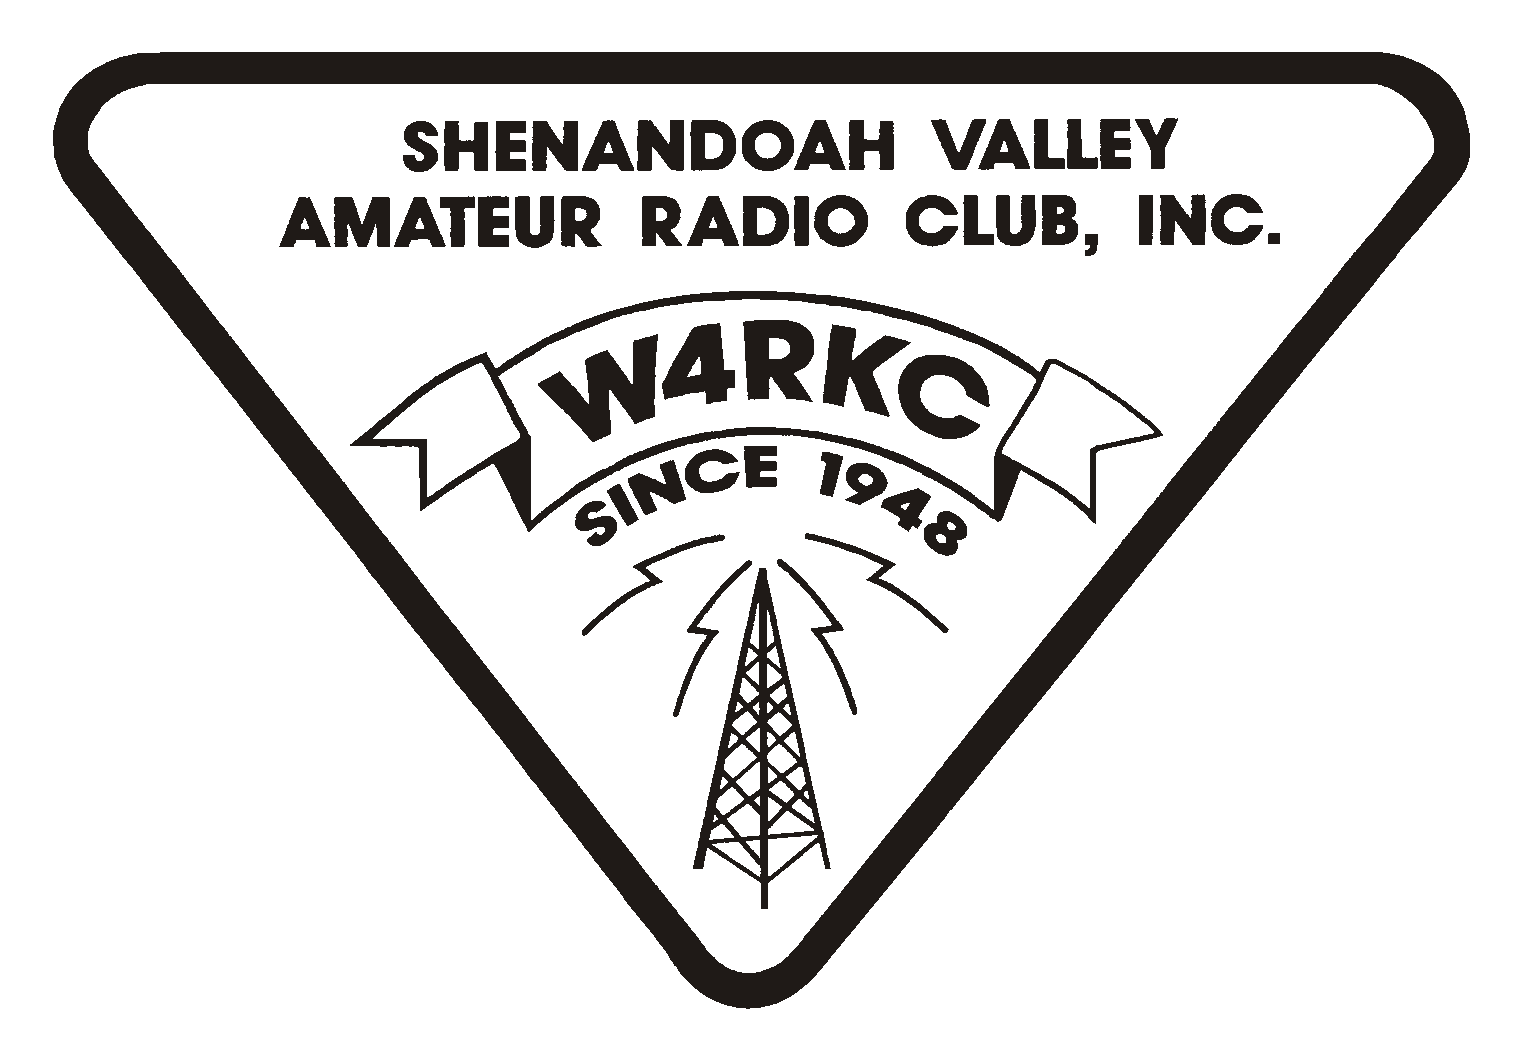 logo: Senandoah Valley Amateur Radio Club, Inc. W4RKC.  Since 1948